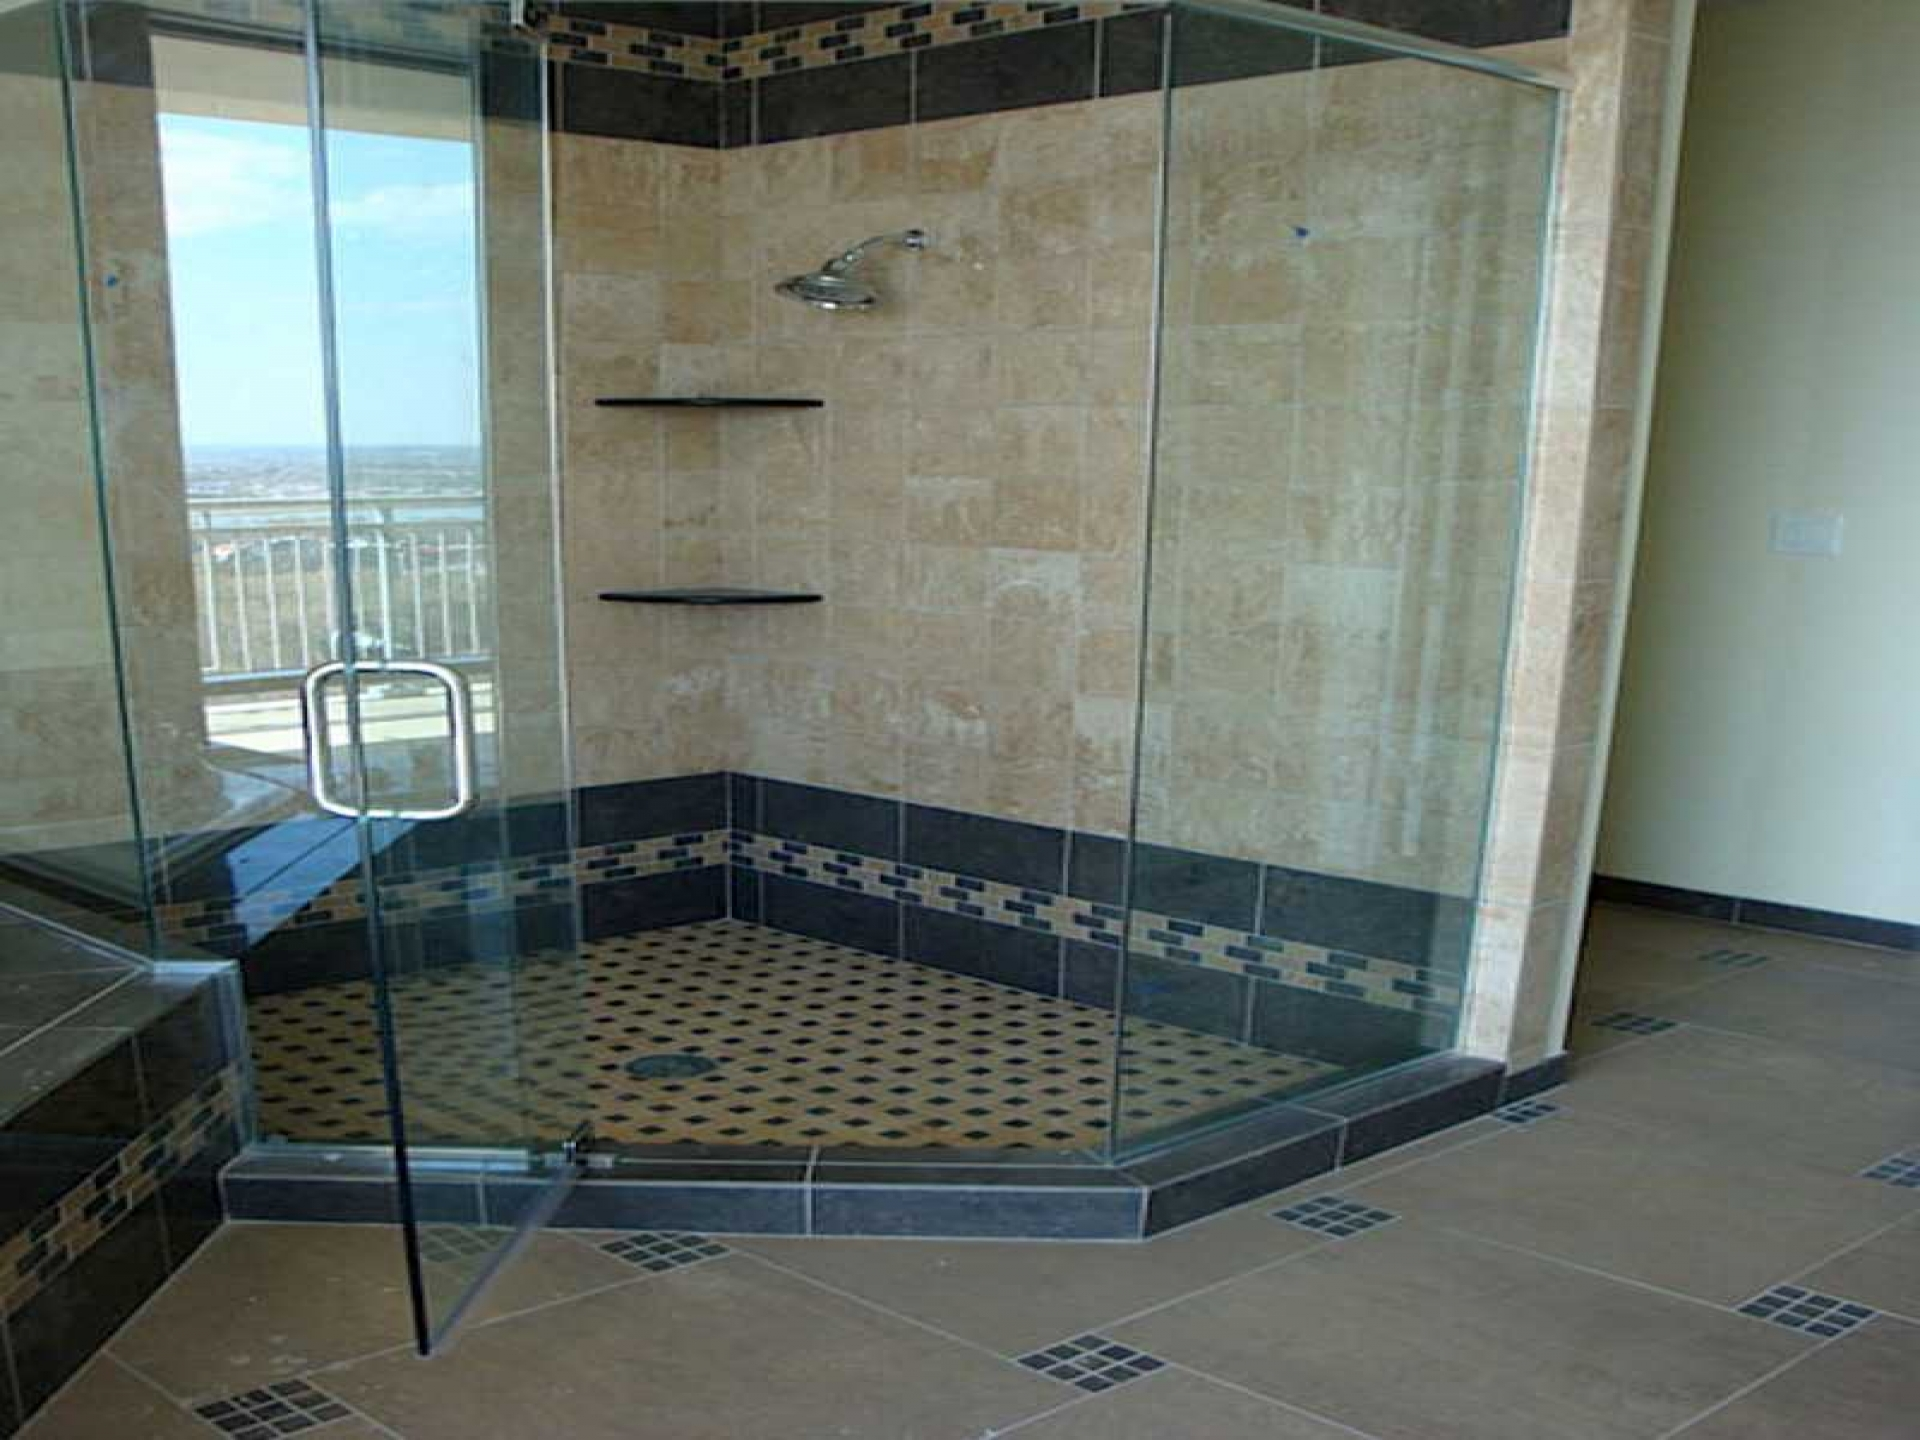 1920x1440-gread-small-bathroom-tile-ideas-corner-shower-bath